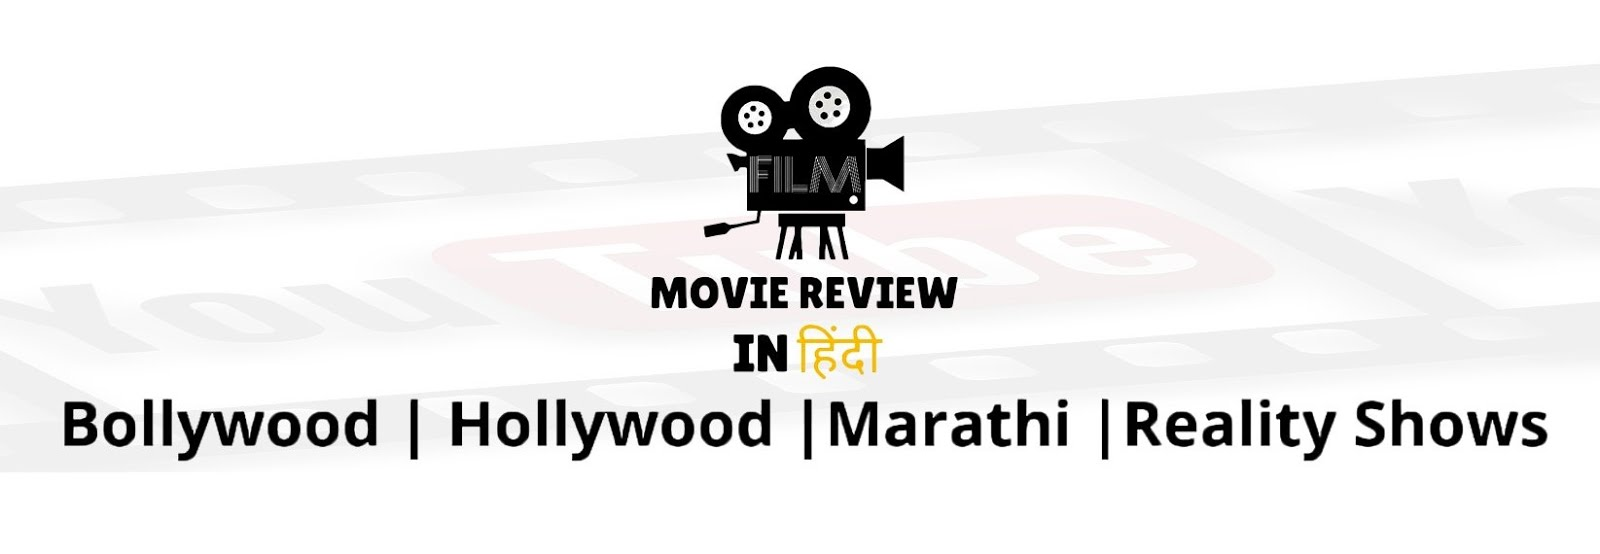 Bollywood Movie Reviews.